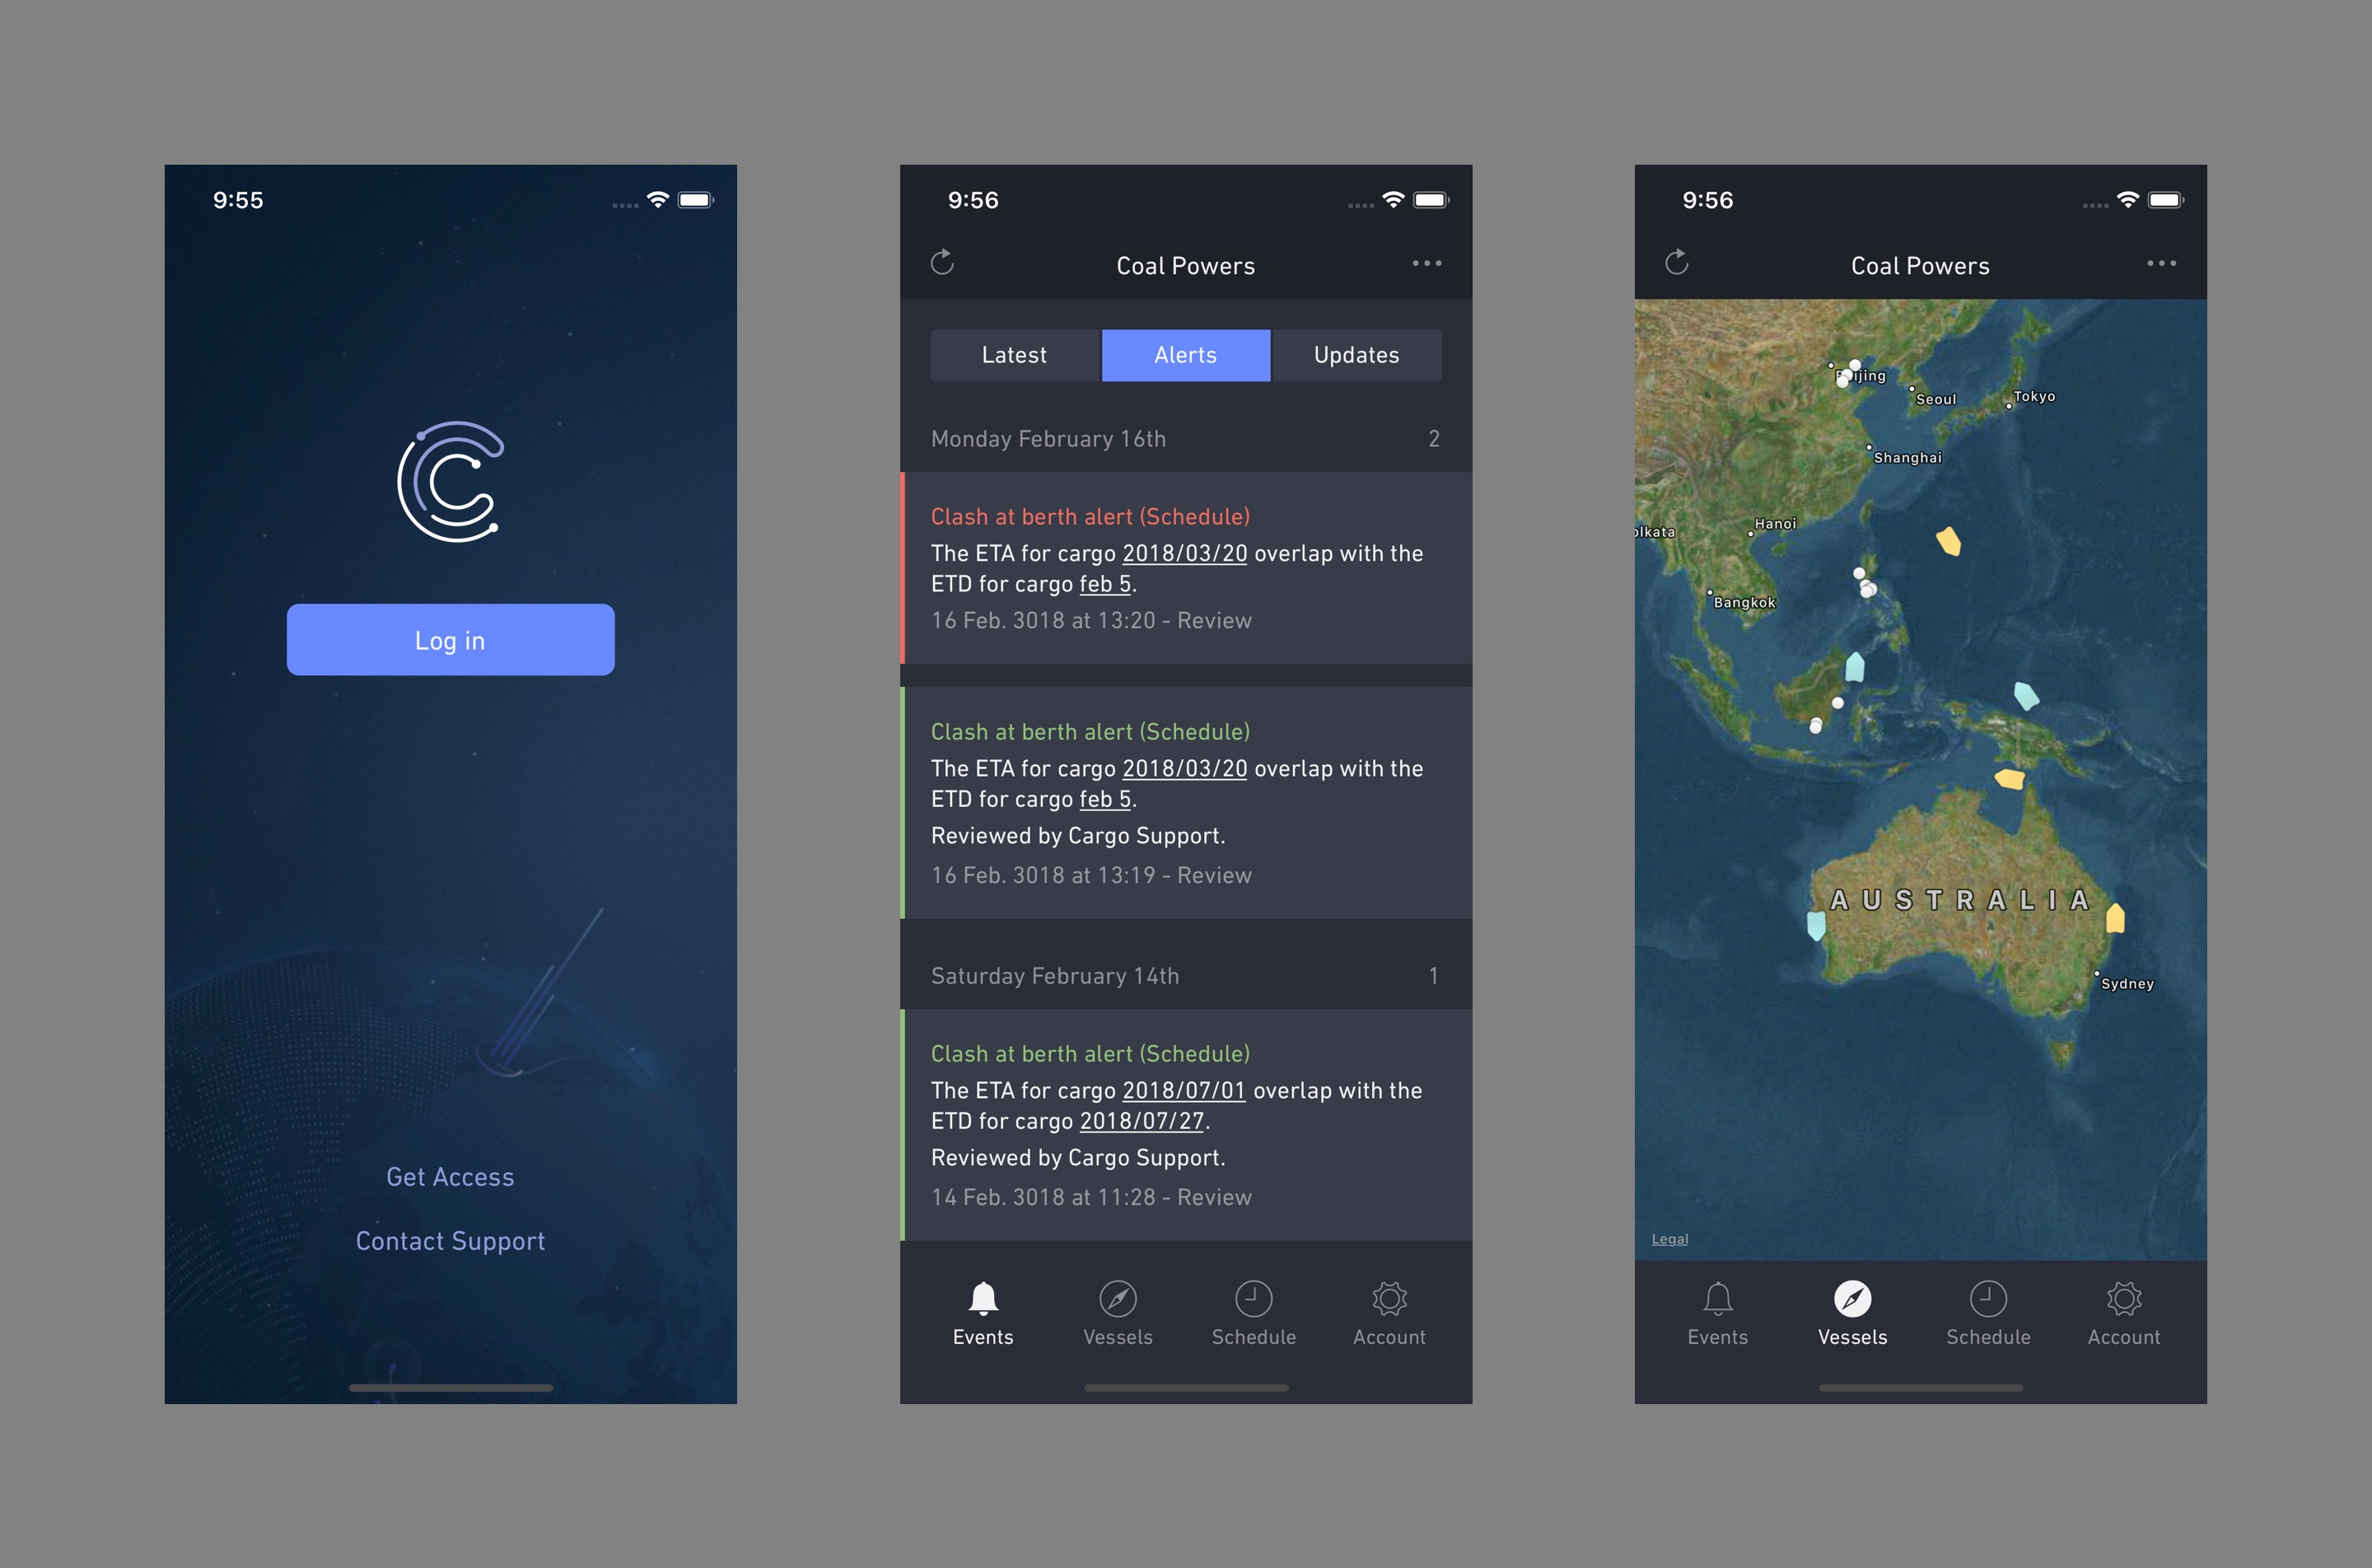 Mobile app screens for logging in, shipment schedule, and a map